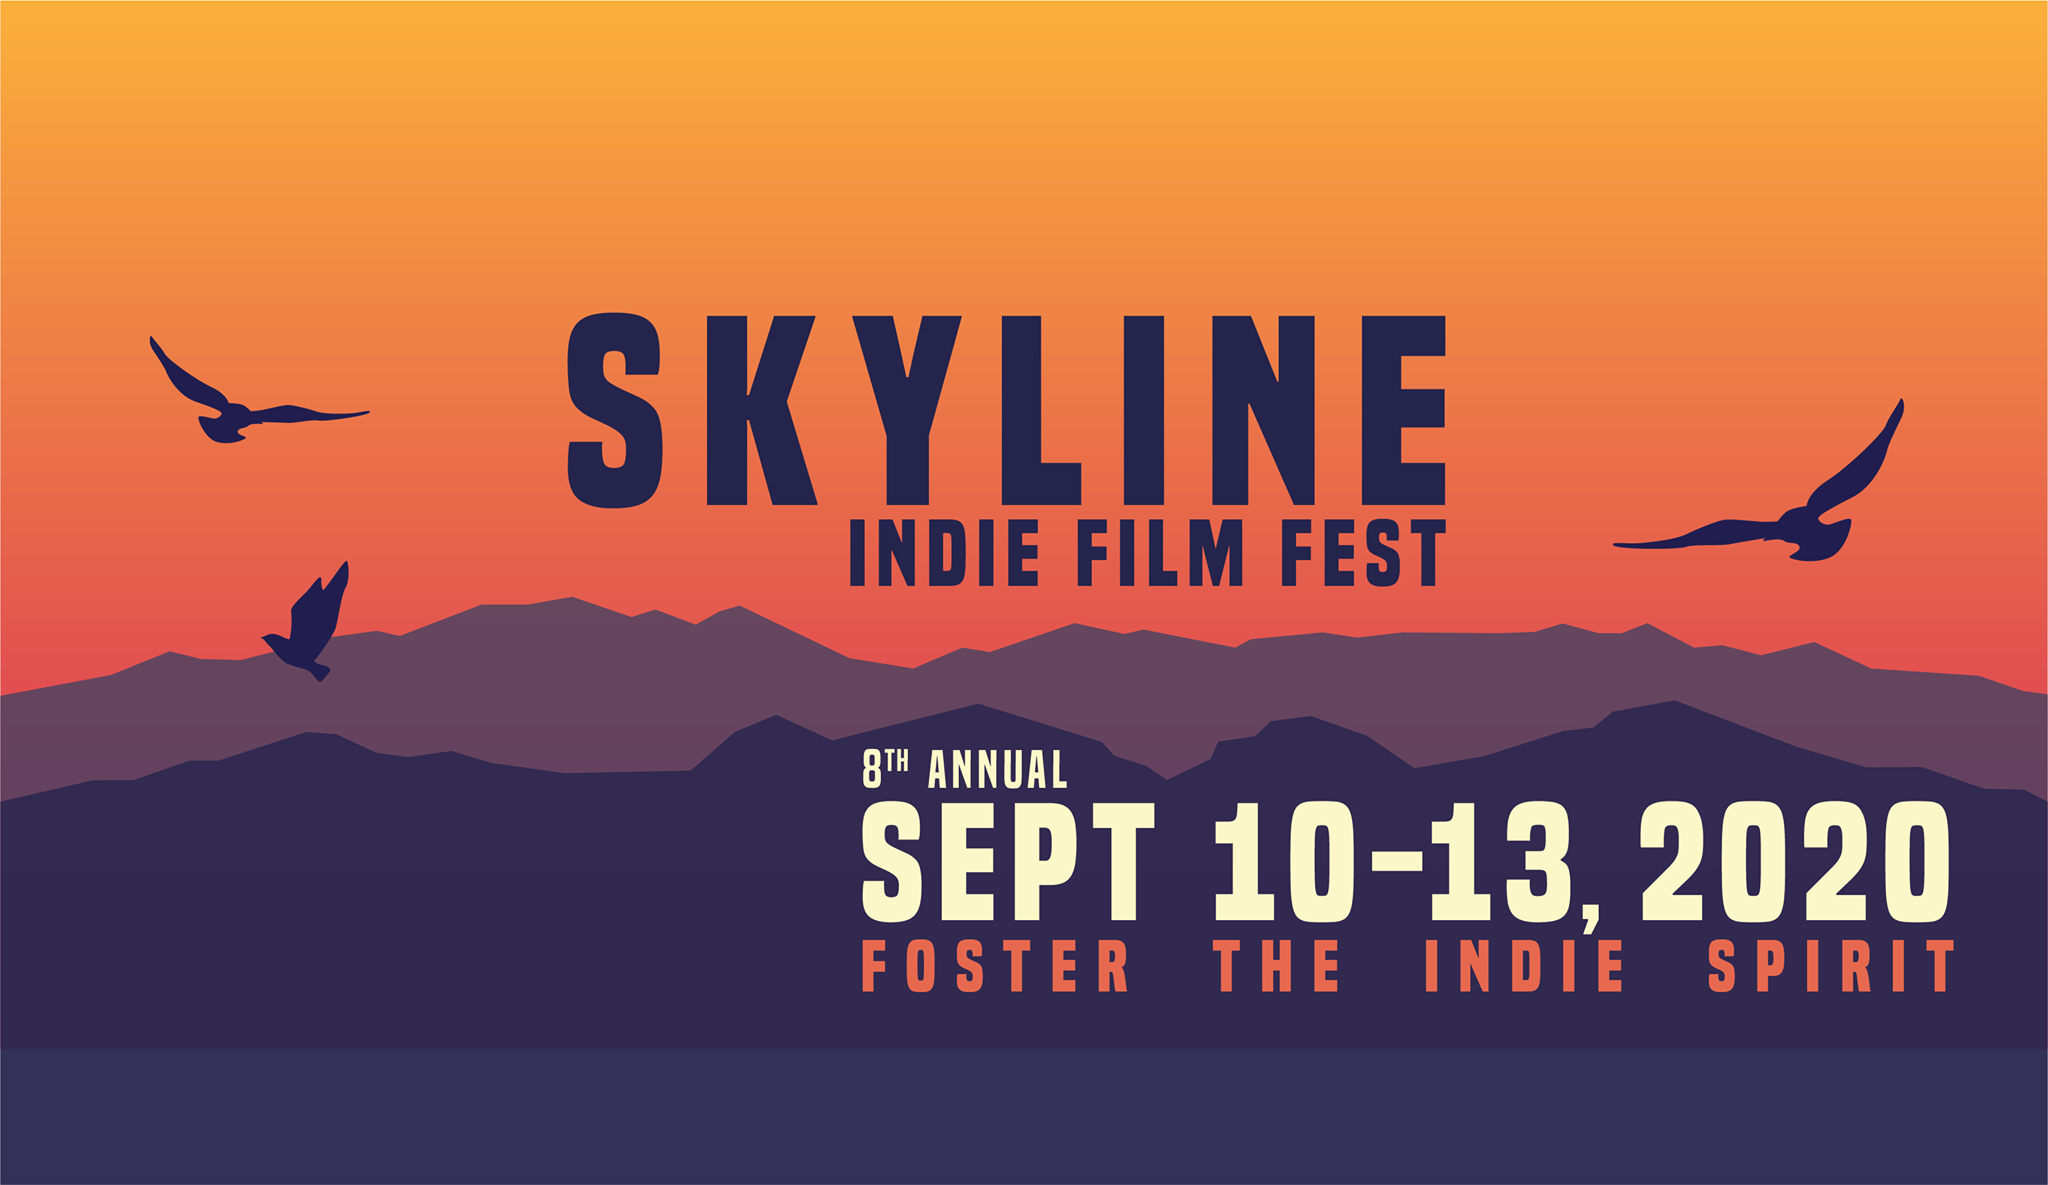 8th Annual Skyline Indie Film Fest